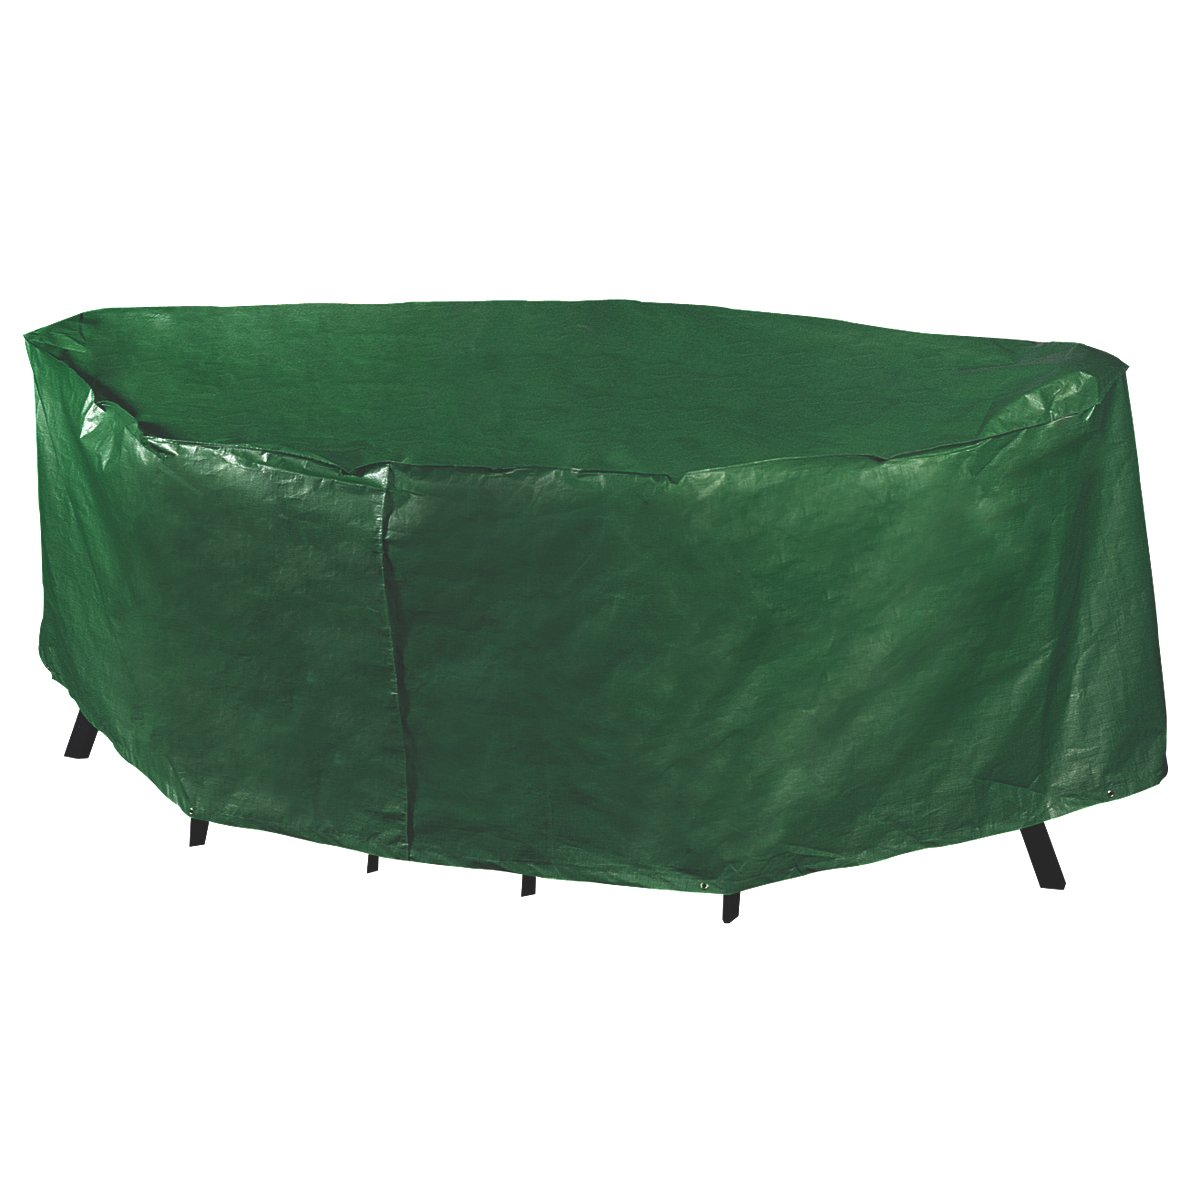 Bosmere B330 Rectangular Patio Set Cover Bosmere Products Ltd